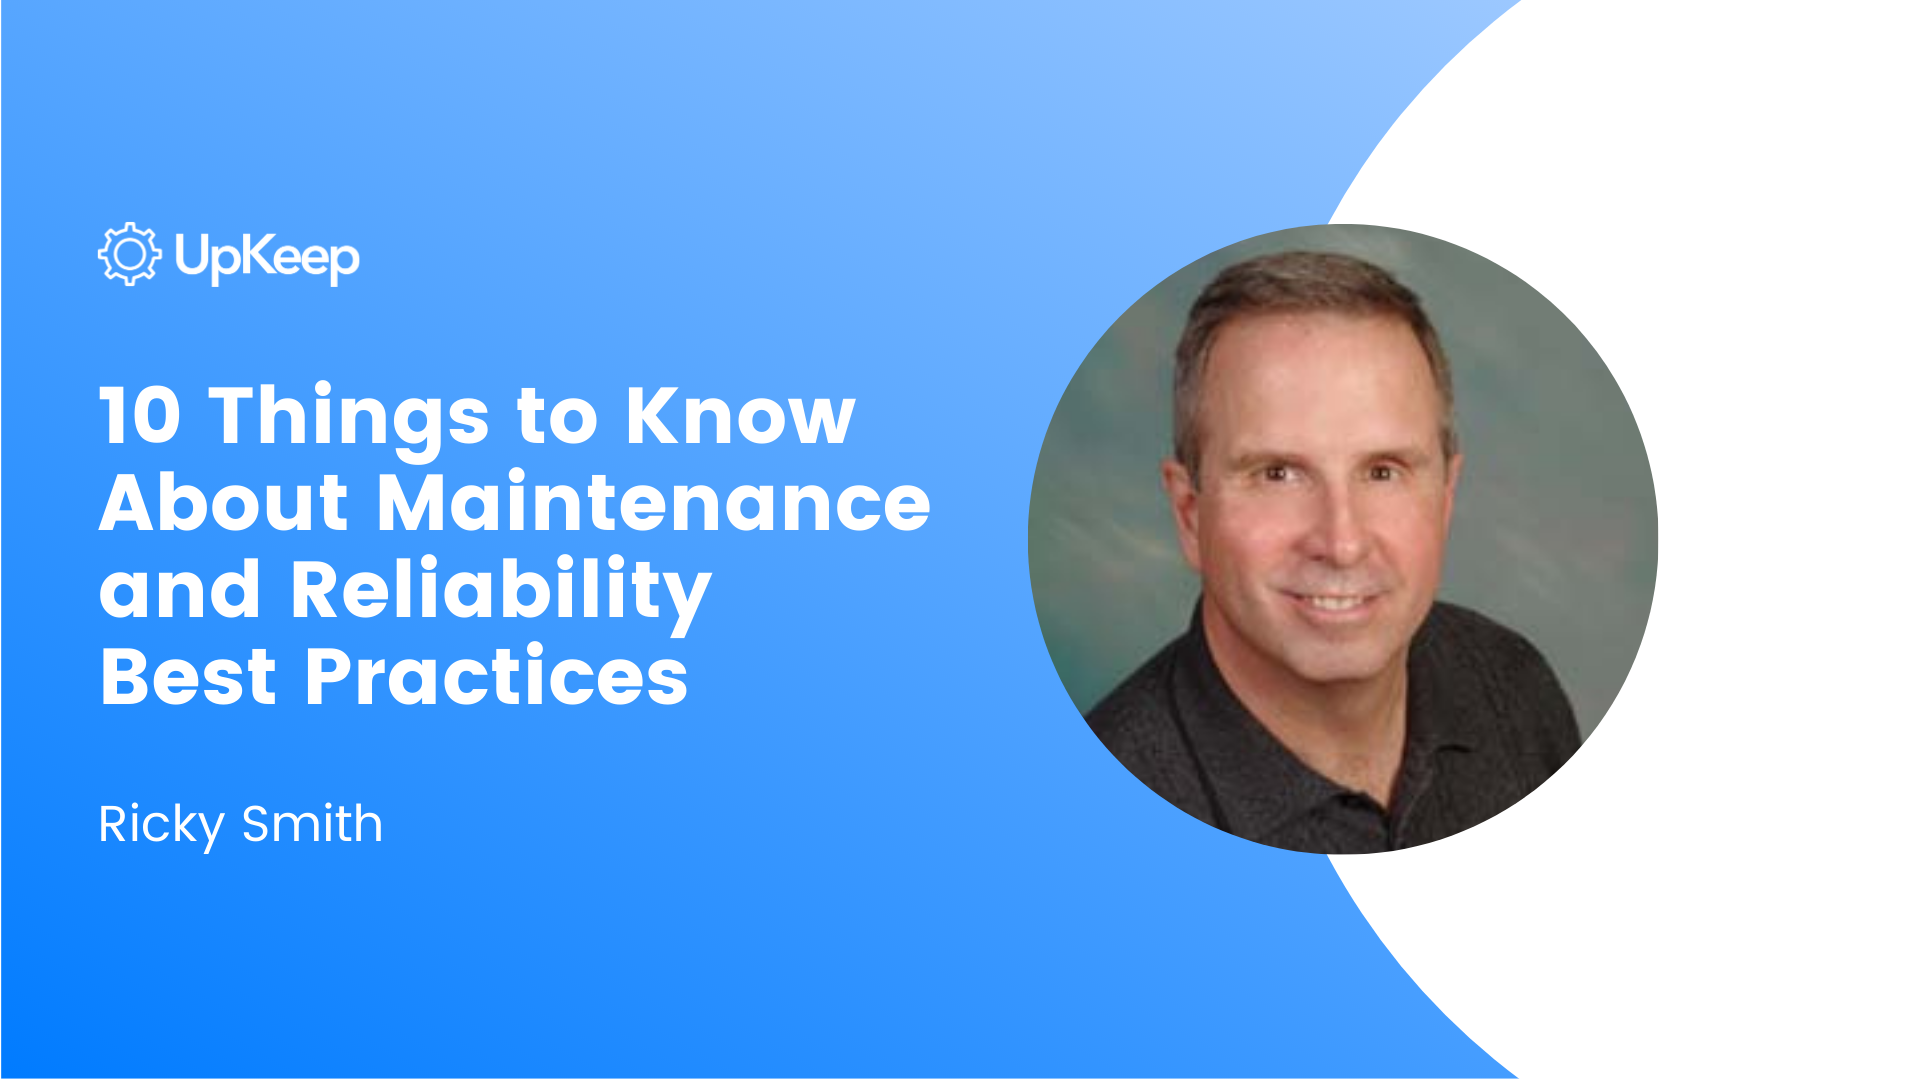 Brought to you by The Maintenance Community Slack Group. Join here for more exclusive events:https://upkeep.typeform.com/to/eic3eoI1.Replay and recording available in the #watch-webinar-replays channel in The Maintenance Community Slack.